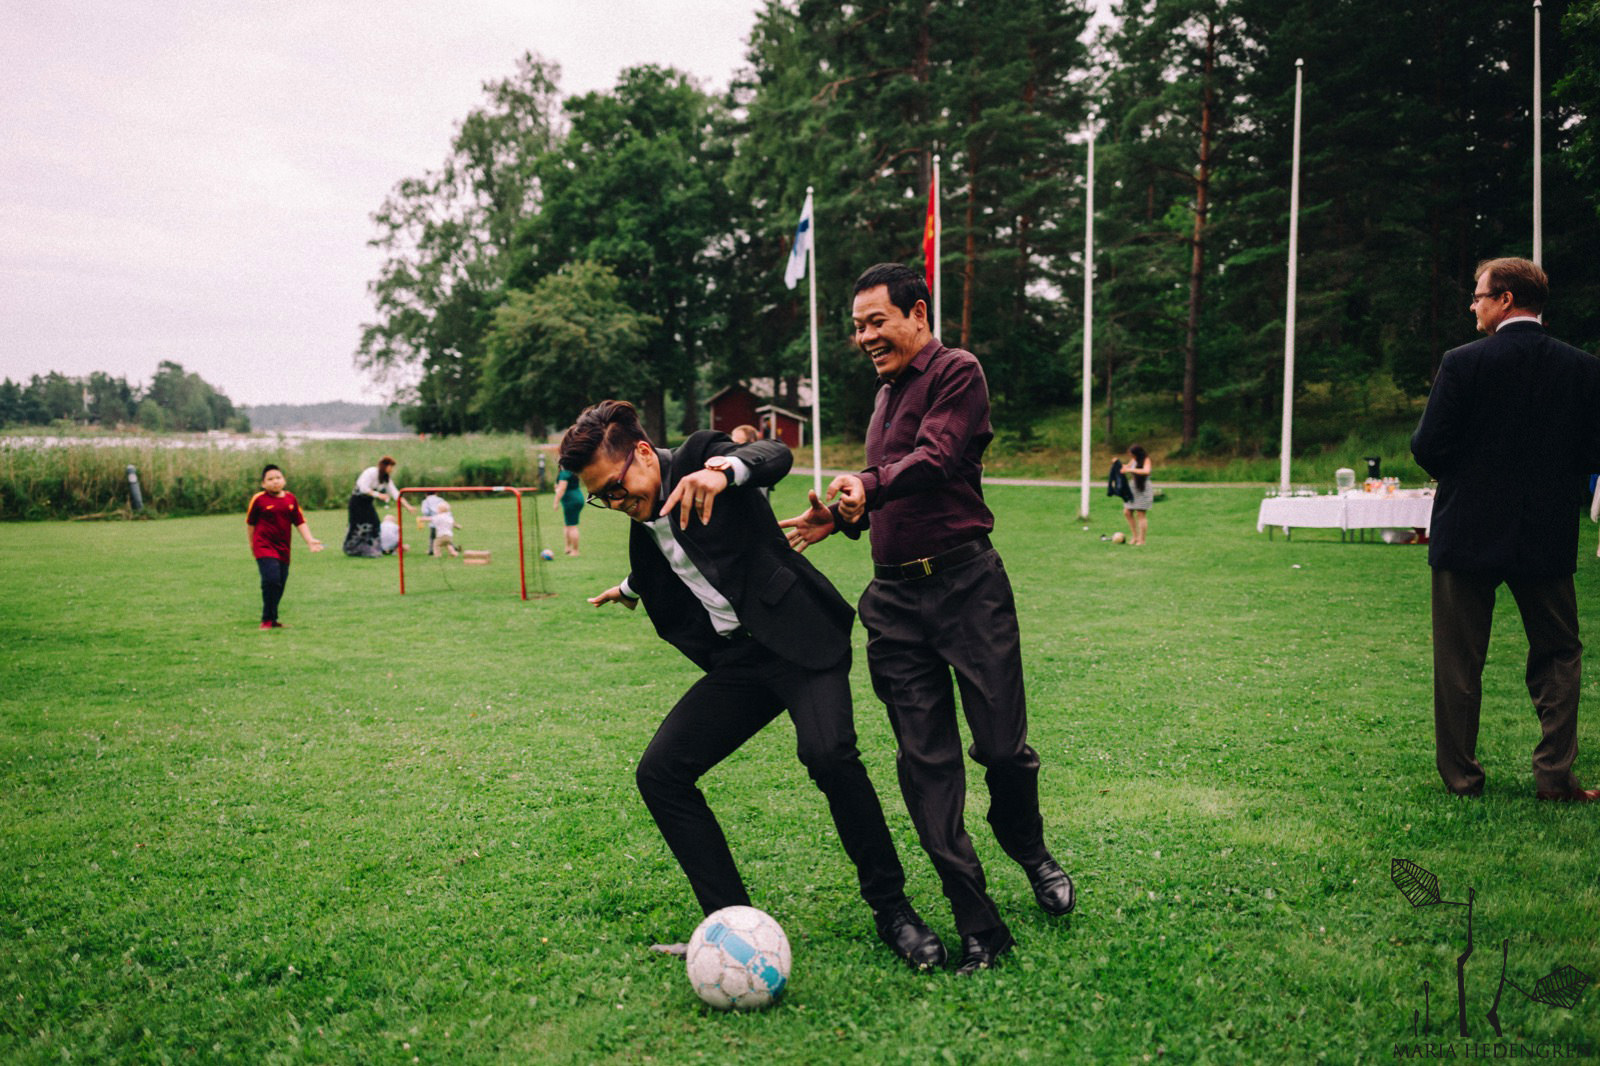 wedding football